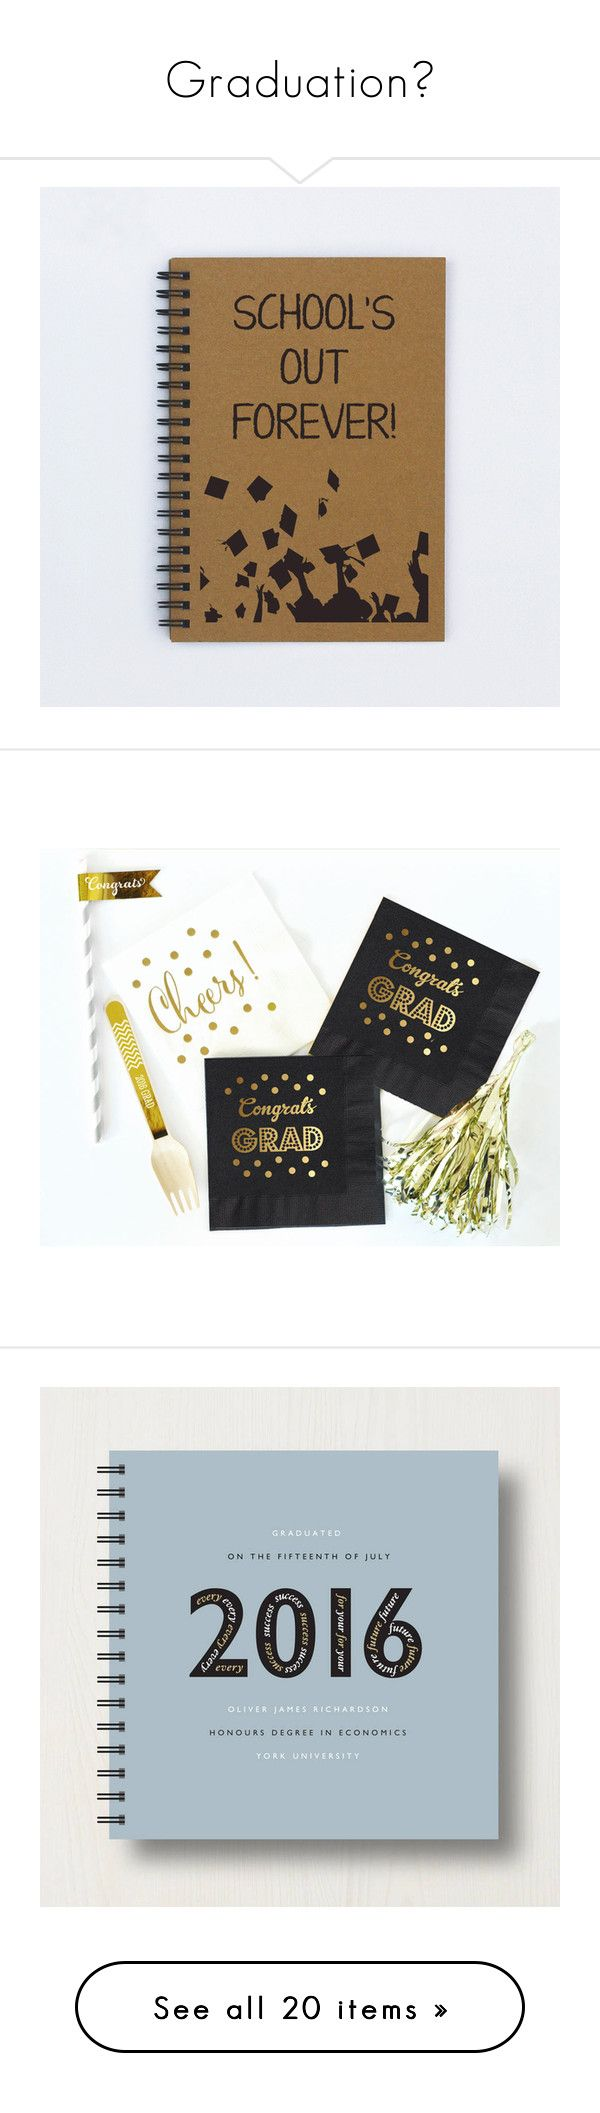 """""""Graduation"""" by dominiquemcain ❤ liked on Polyvore featuring home, home decor, stationery, kitchen & dining, table linens, metallic napkins, gold table napkins, metallic gold napkins, black napkins and gold napkins"""